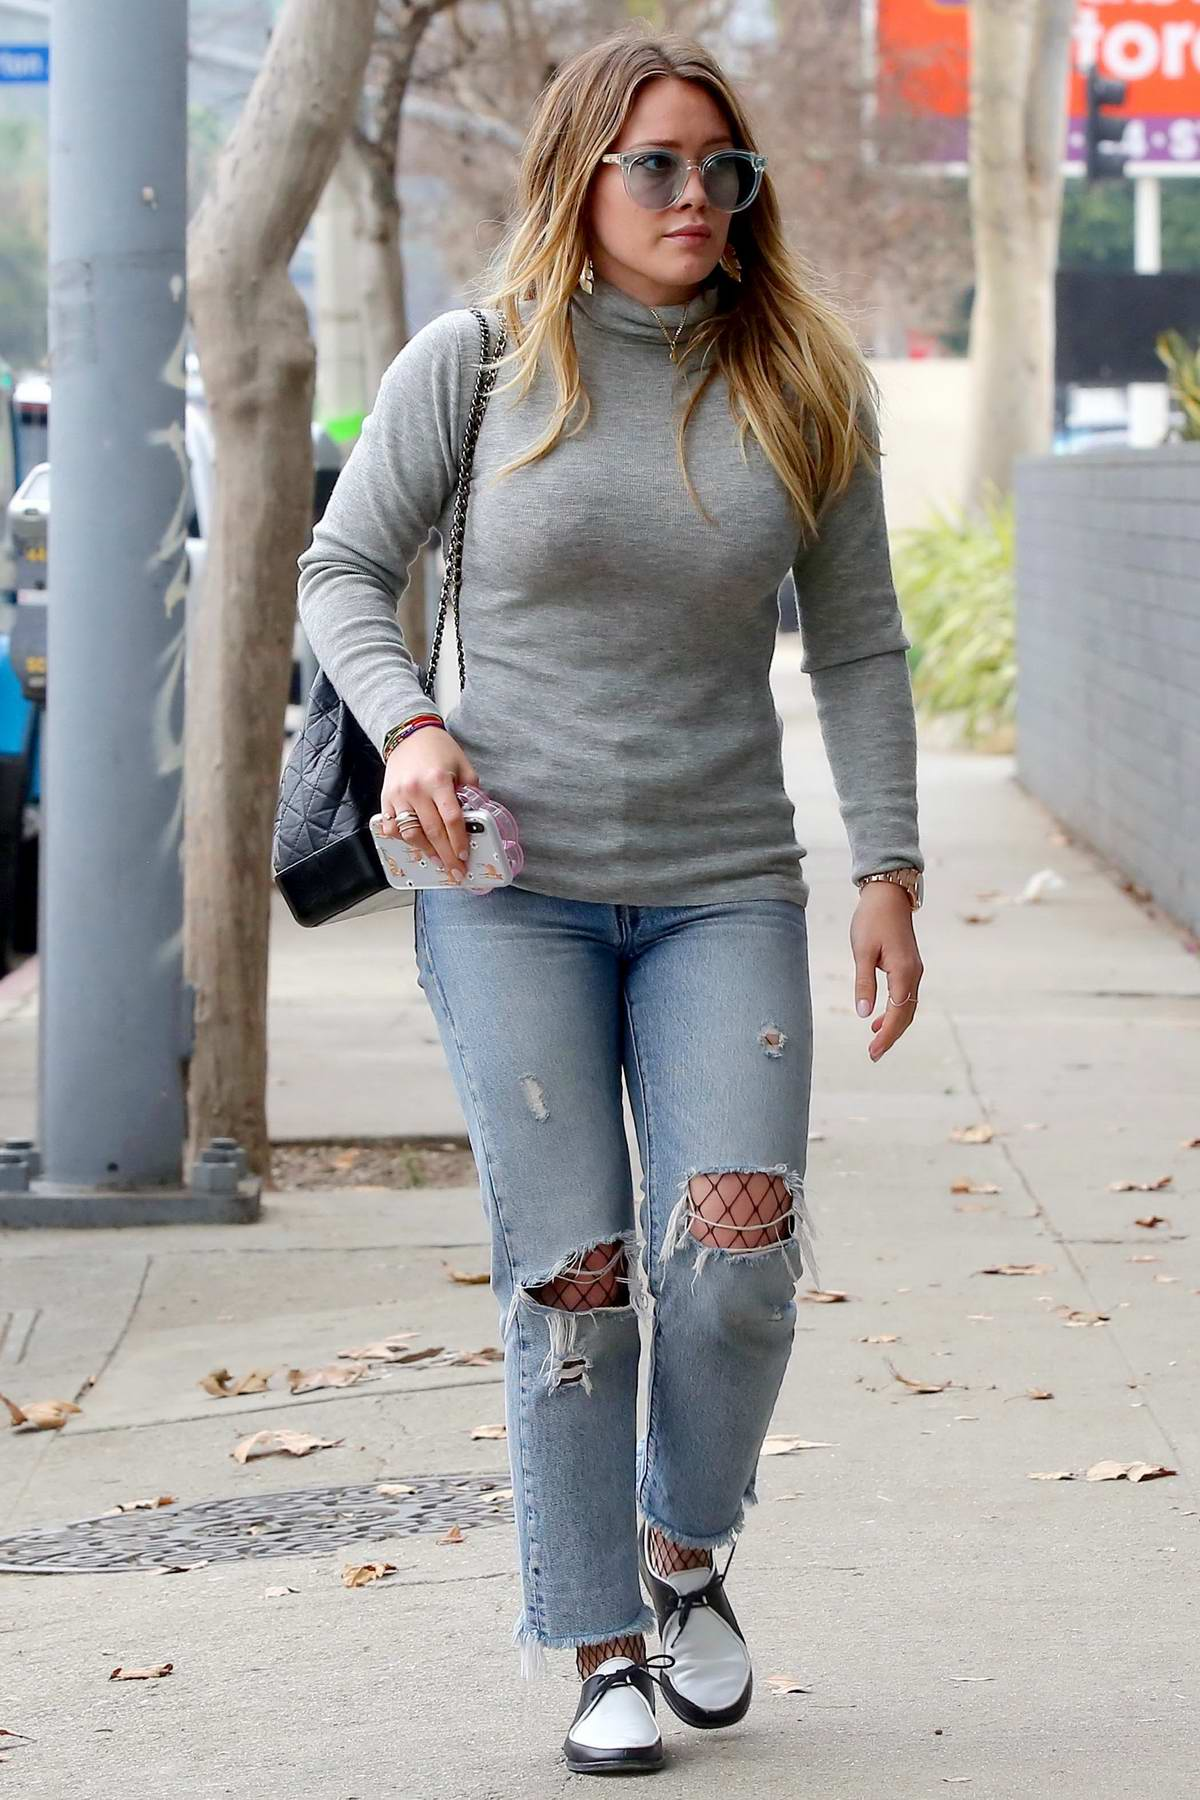 Hilary Duff wore ripped jeans and turtleneck while running errands in Los Angeles